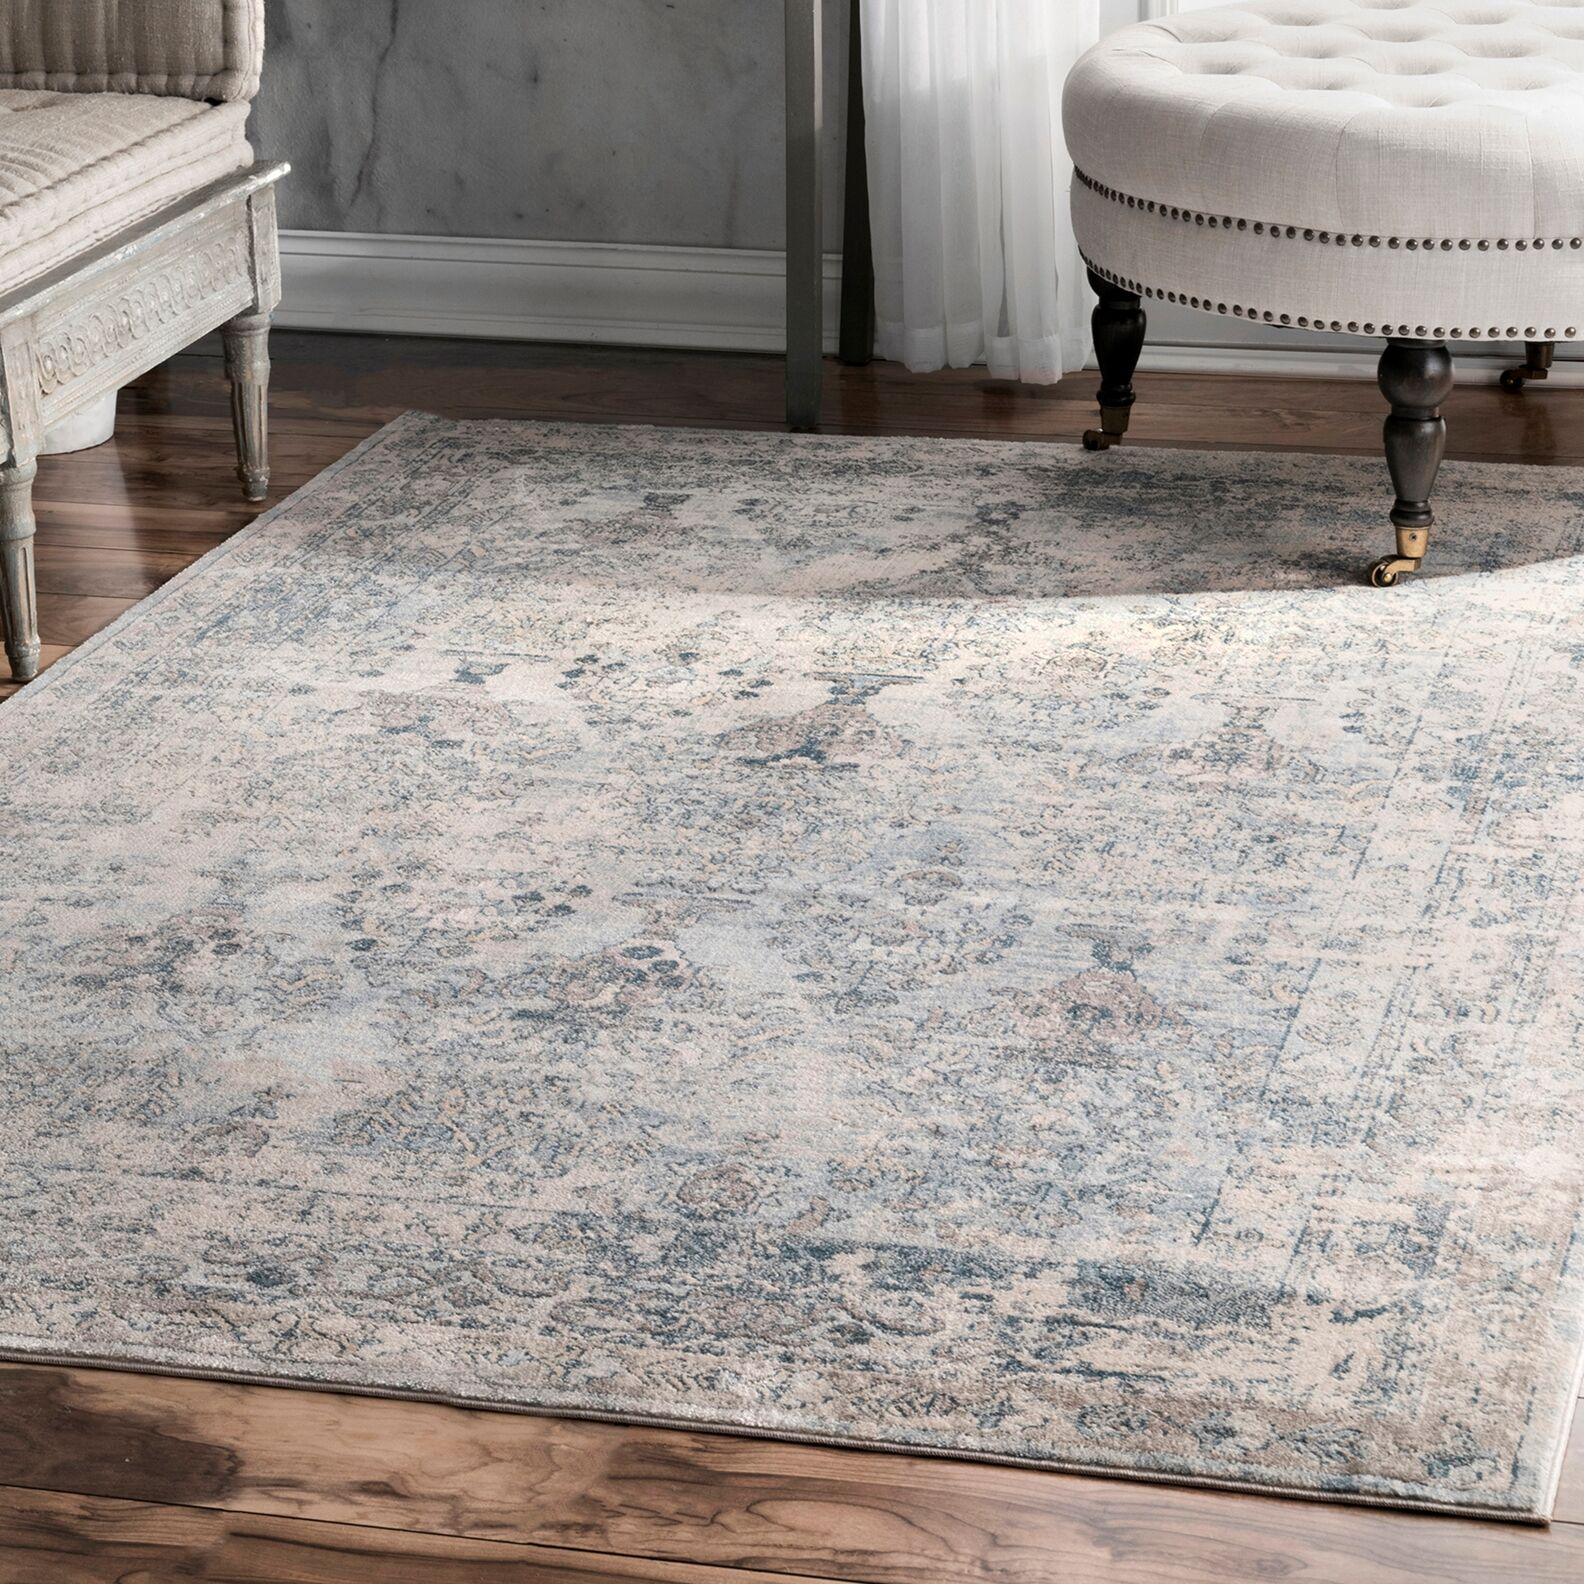 Wimberley Hand-Woven Cotton Beige Area Rug Rug Size: Rectangle 7'6